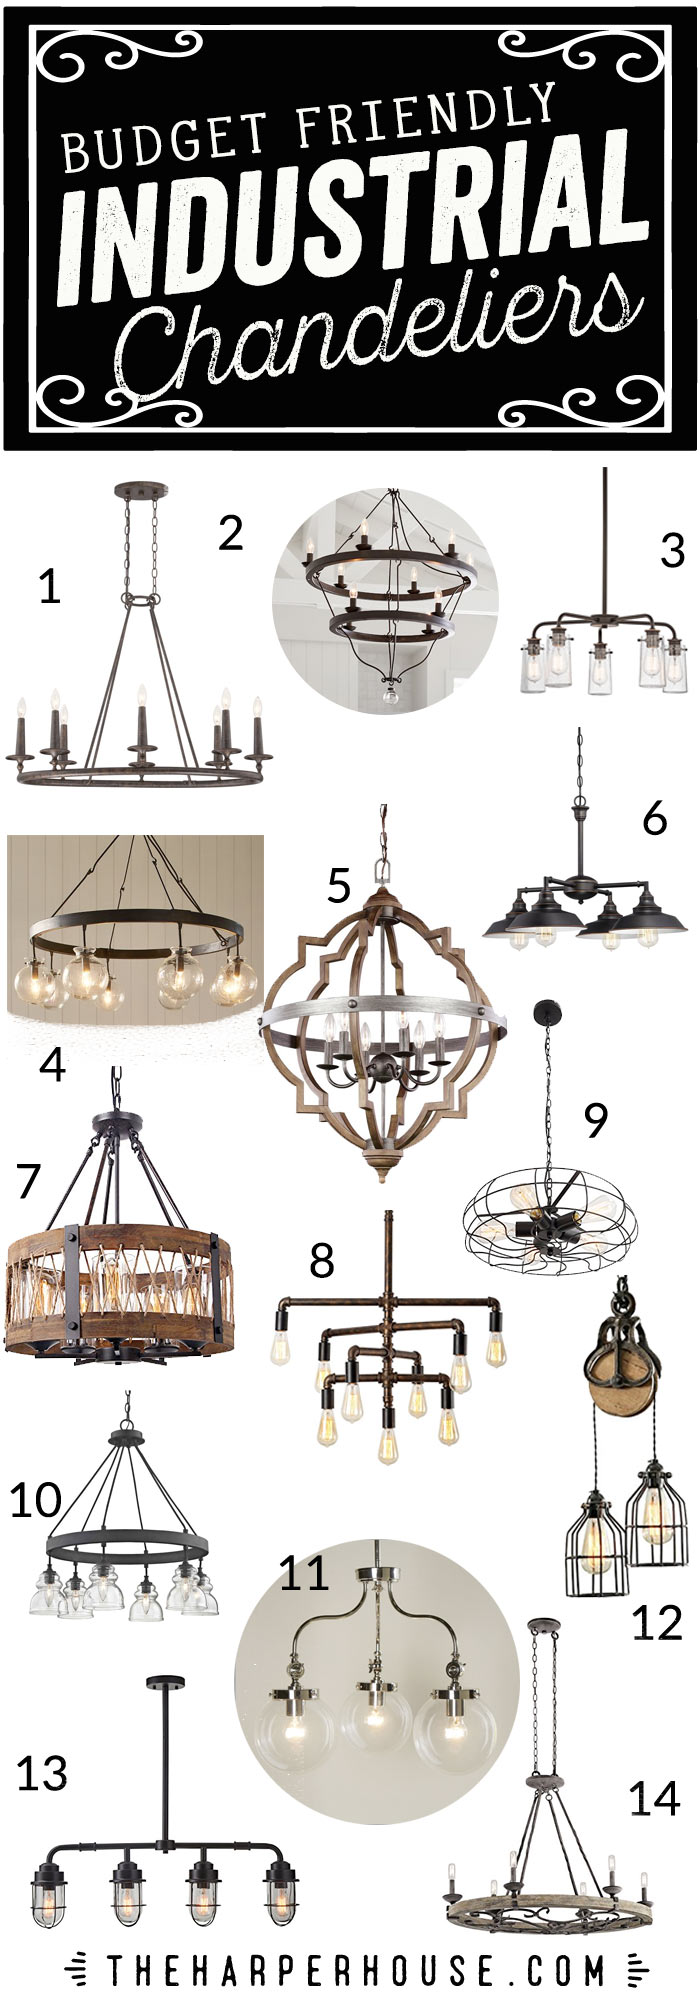 Industrial Chandelier Roundup featuring 15 budget friendly options to bring that industrial chic vibe to your space. #industriallighting